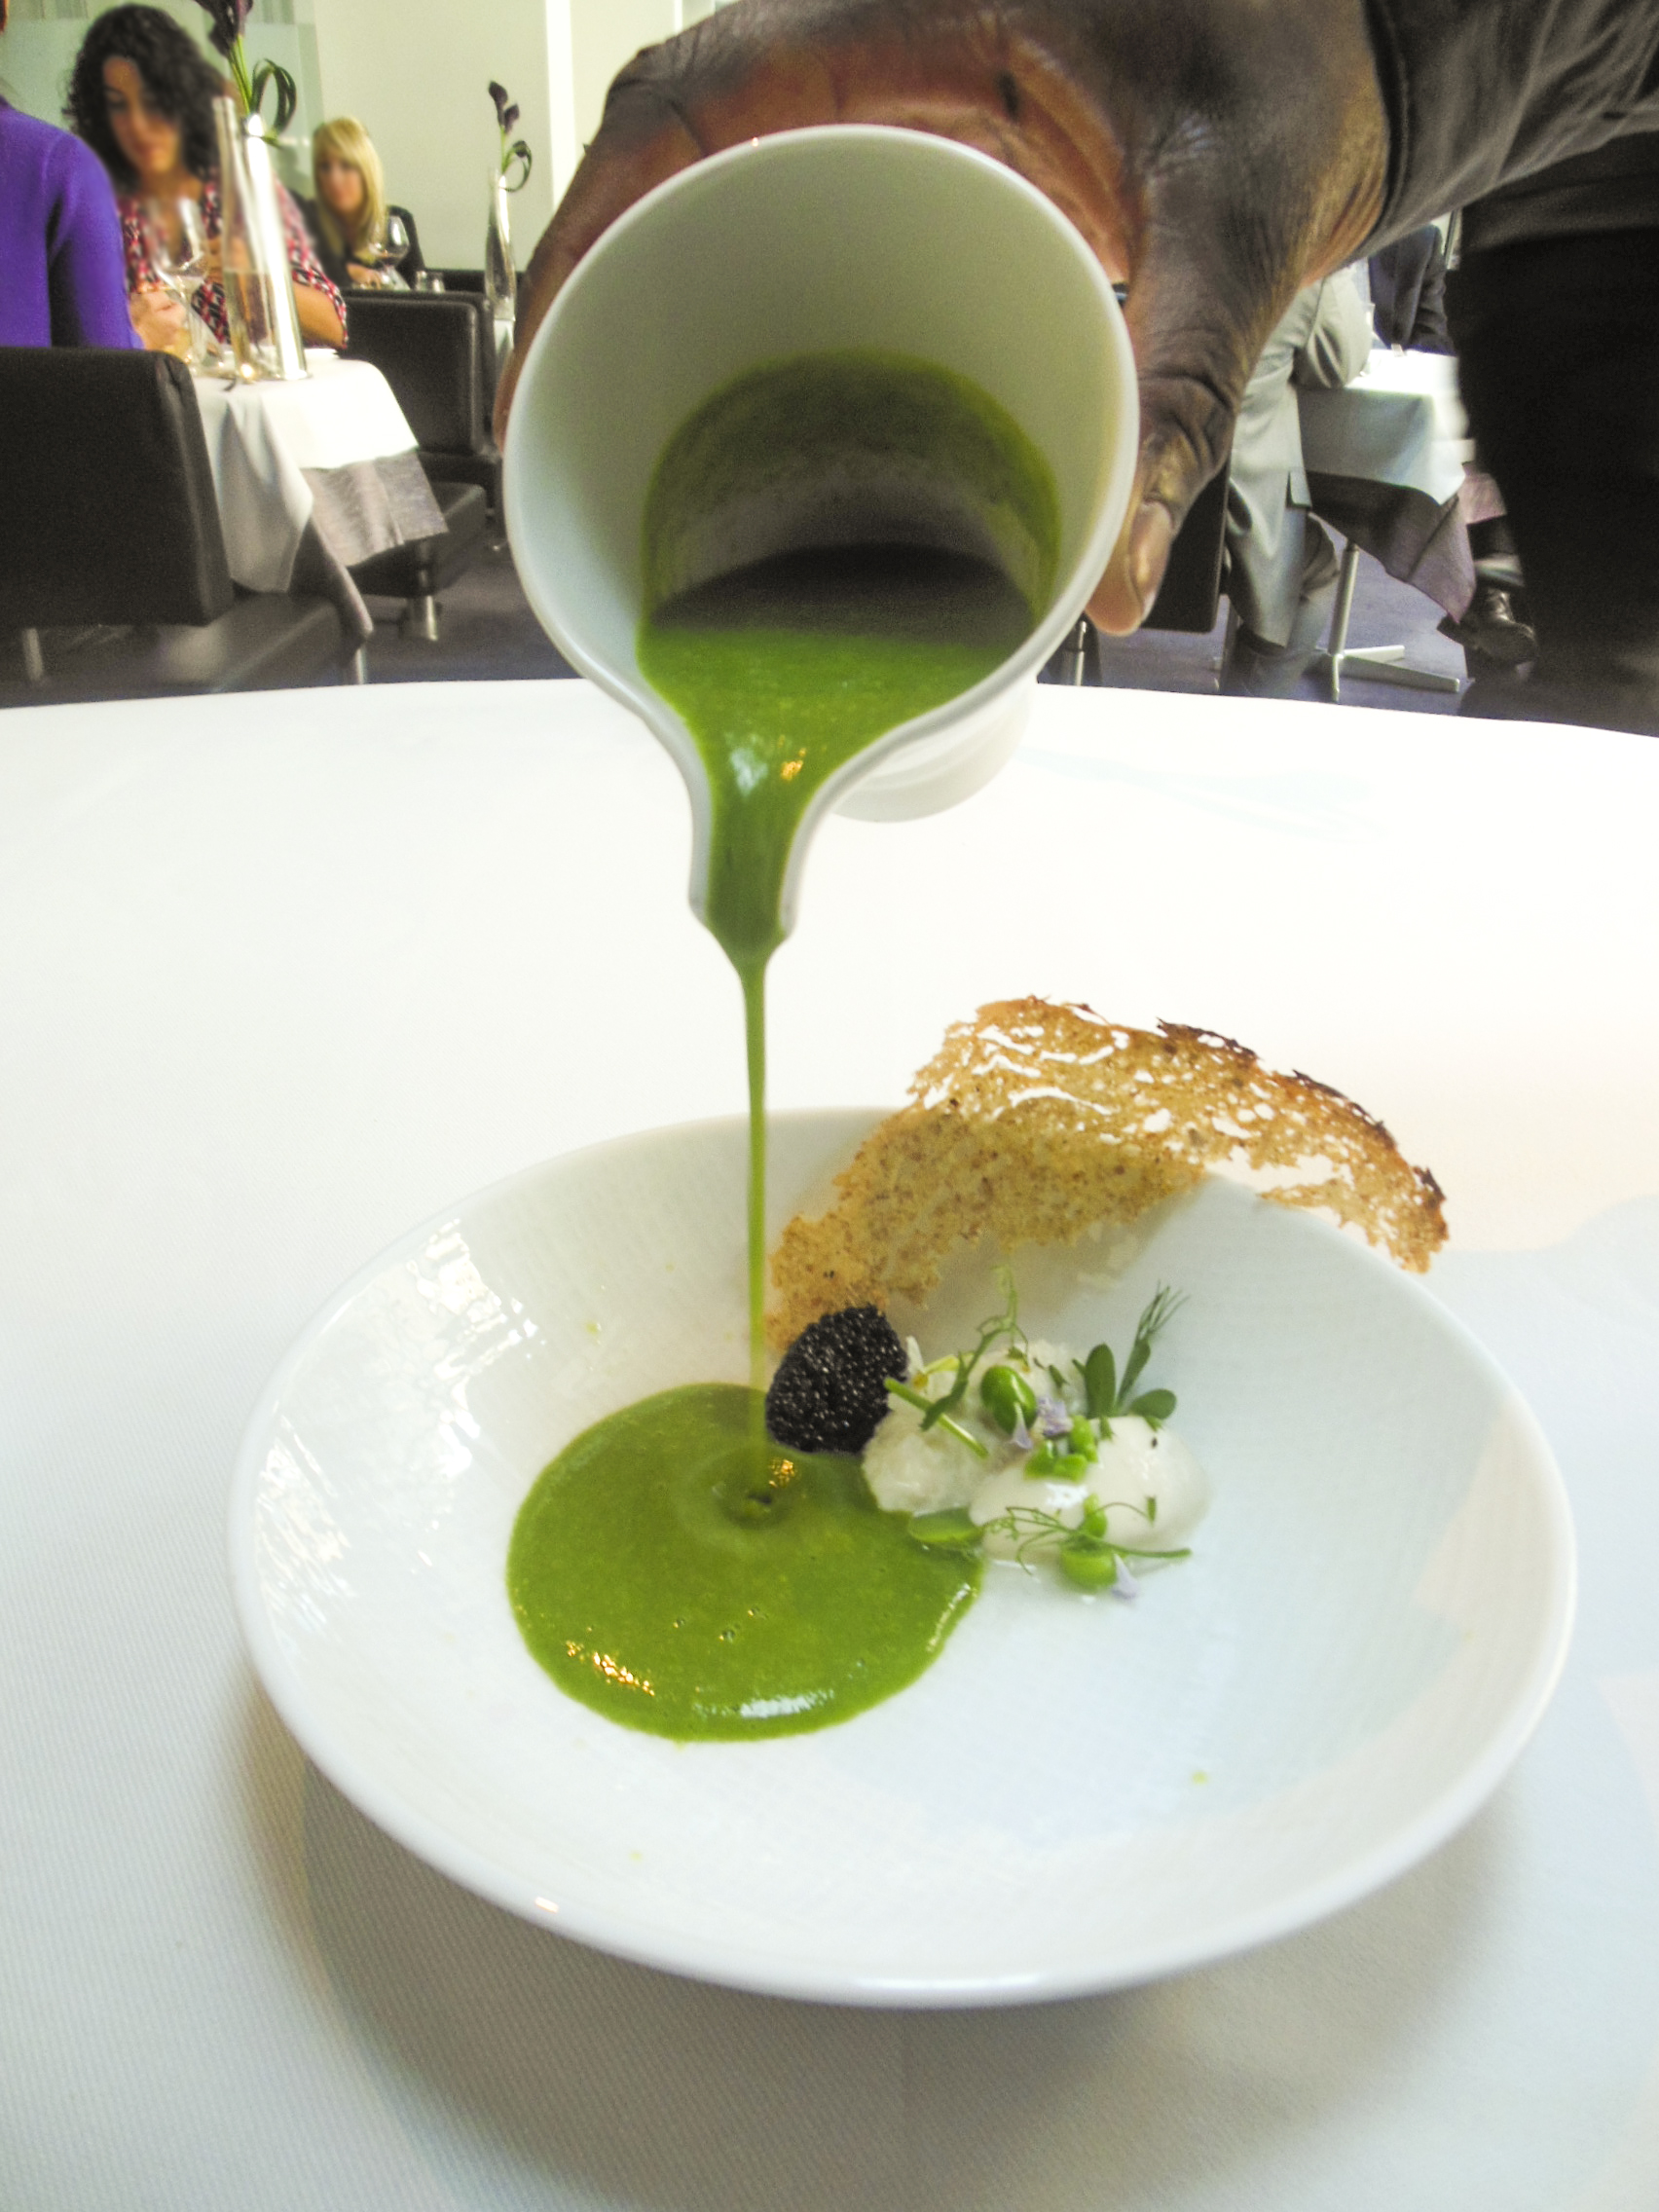 Amuse-Bouche: Smoked Sturgeon Caviar in Pea Puree